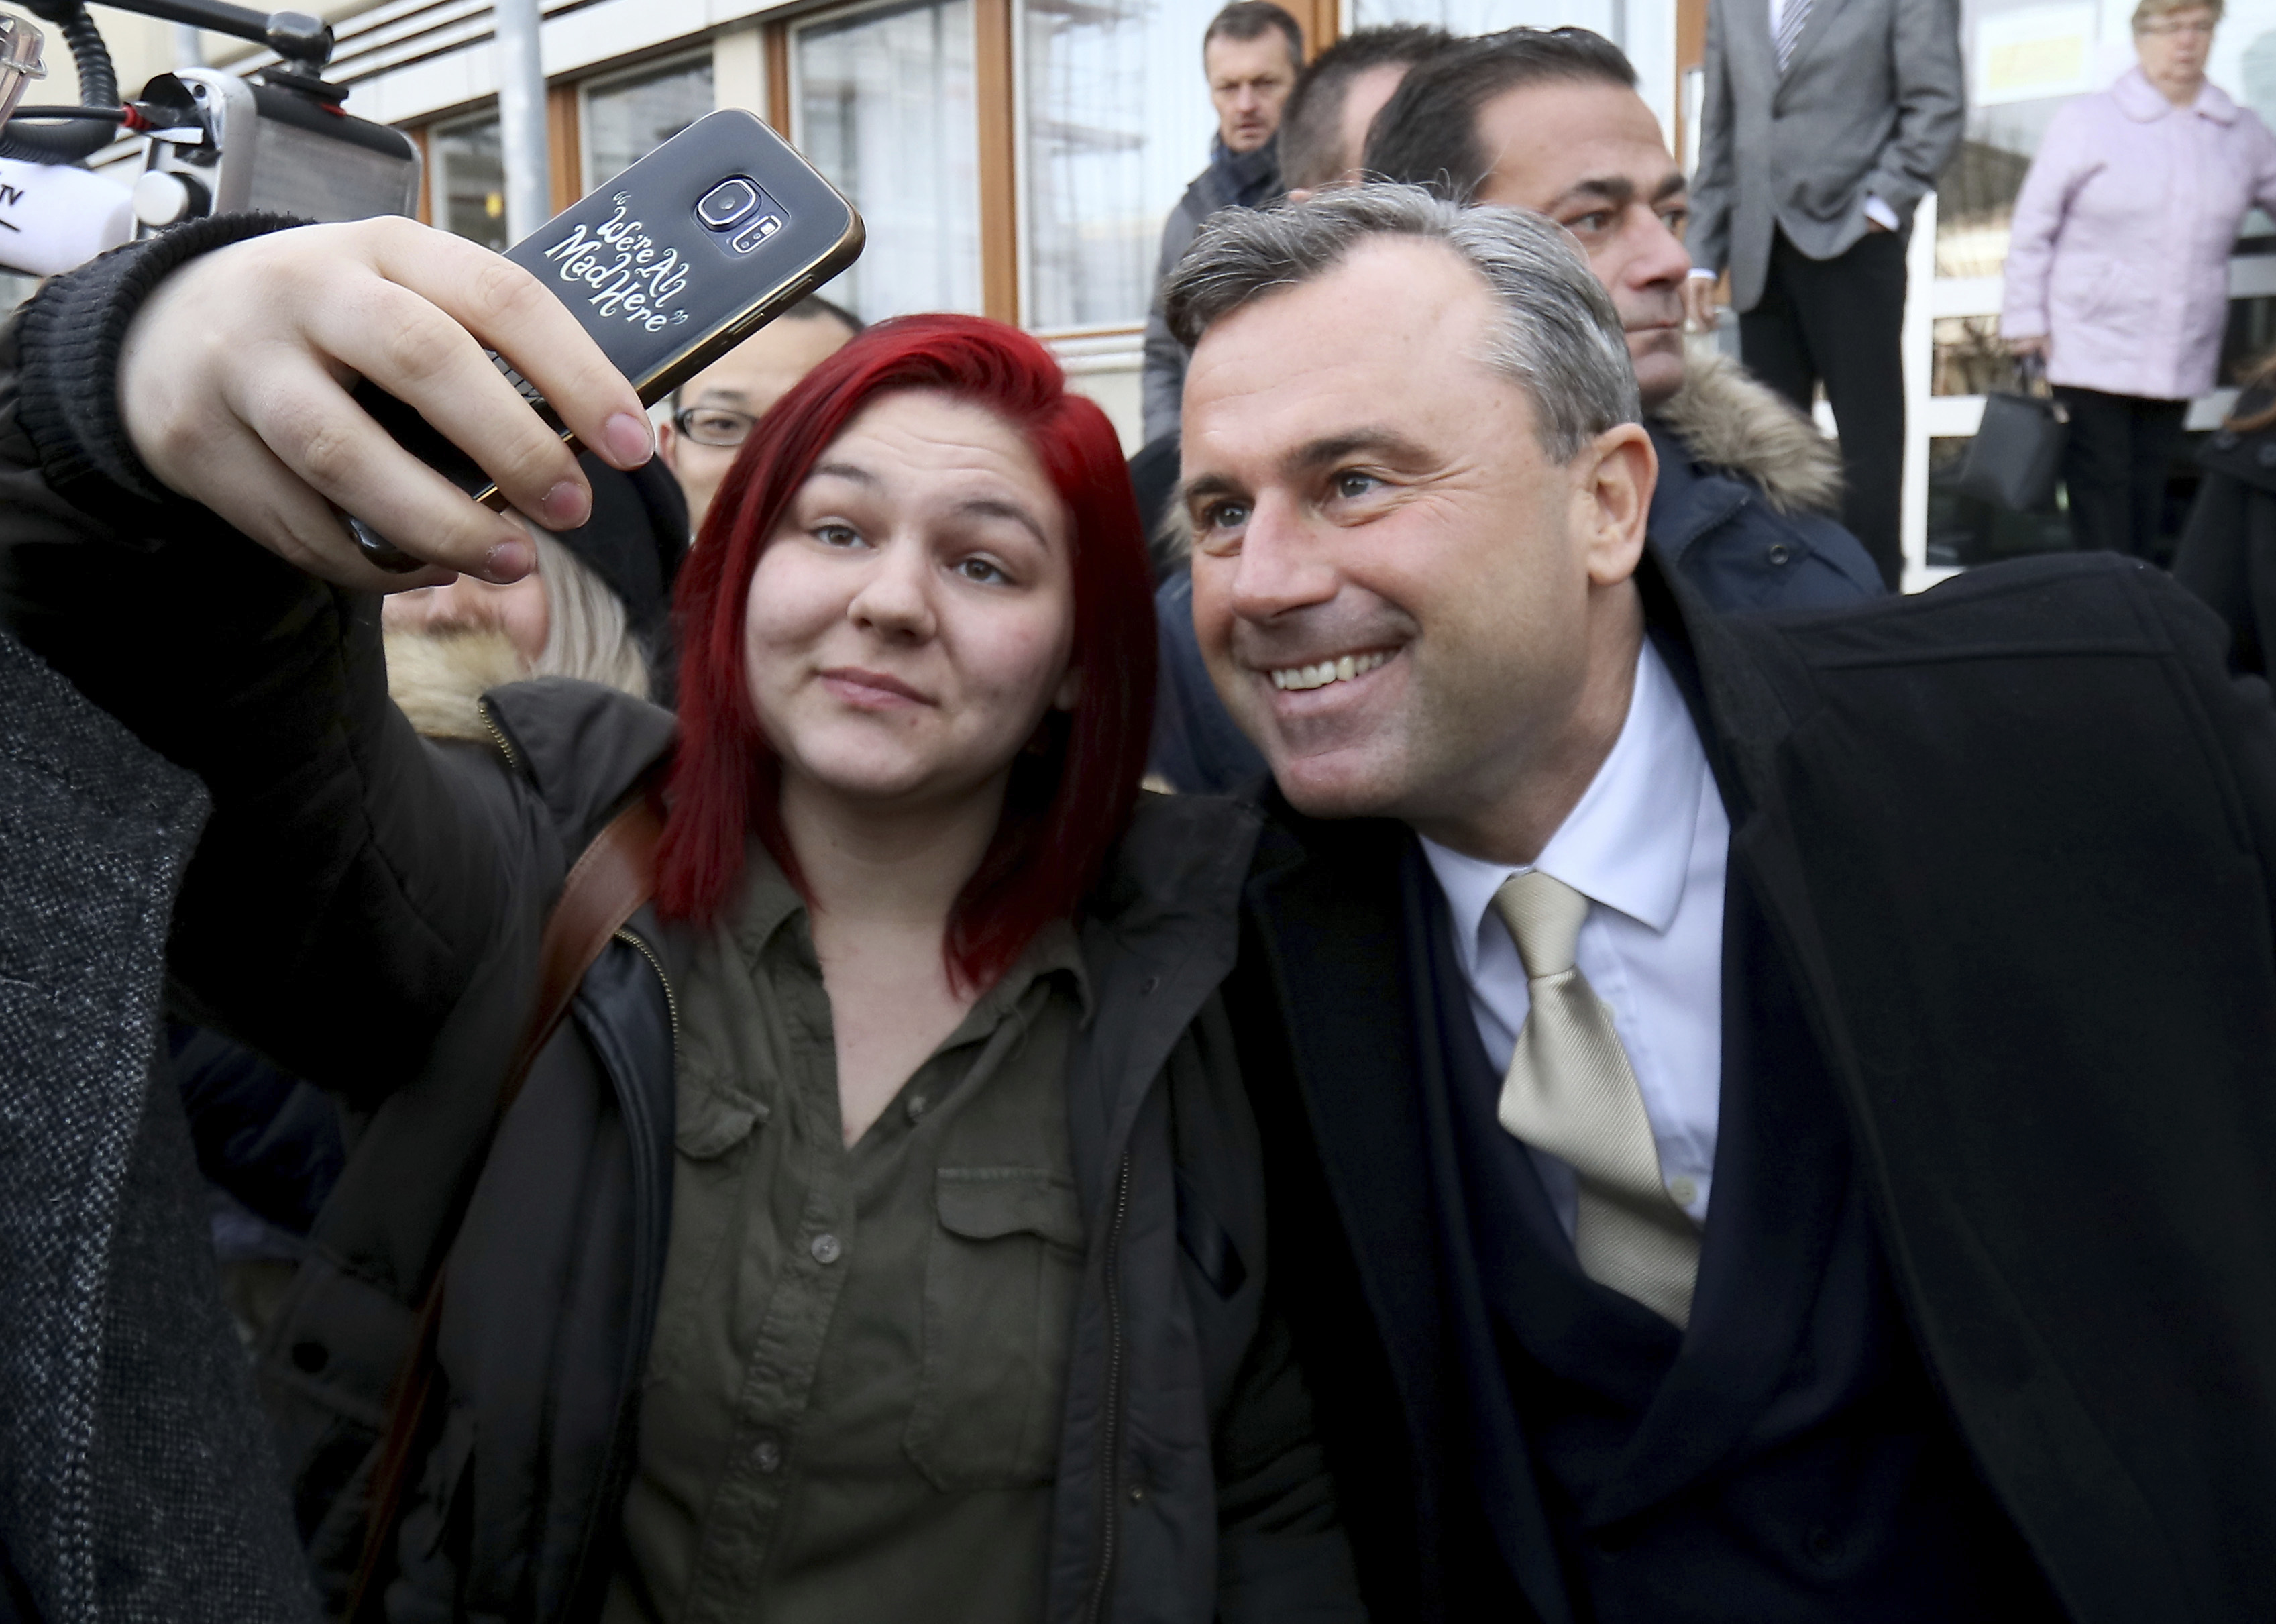 Norbert Hofer of Austria's Freedom Party, FPOE, takes pictures during the Austrian presidential elections, in Pinkafeld, Austria, on Dec. 4, 2016. (AP Photo/Ronald Zak)